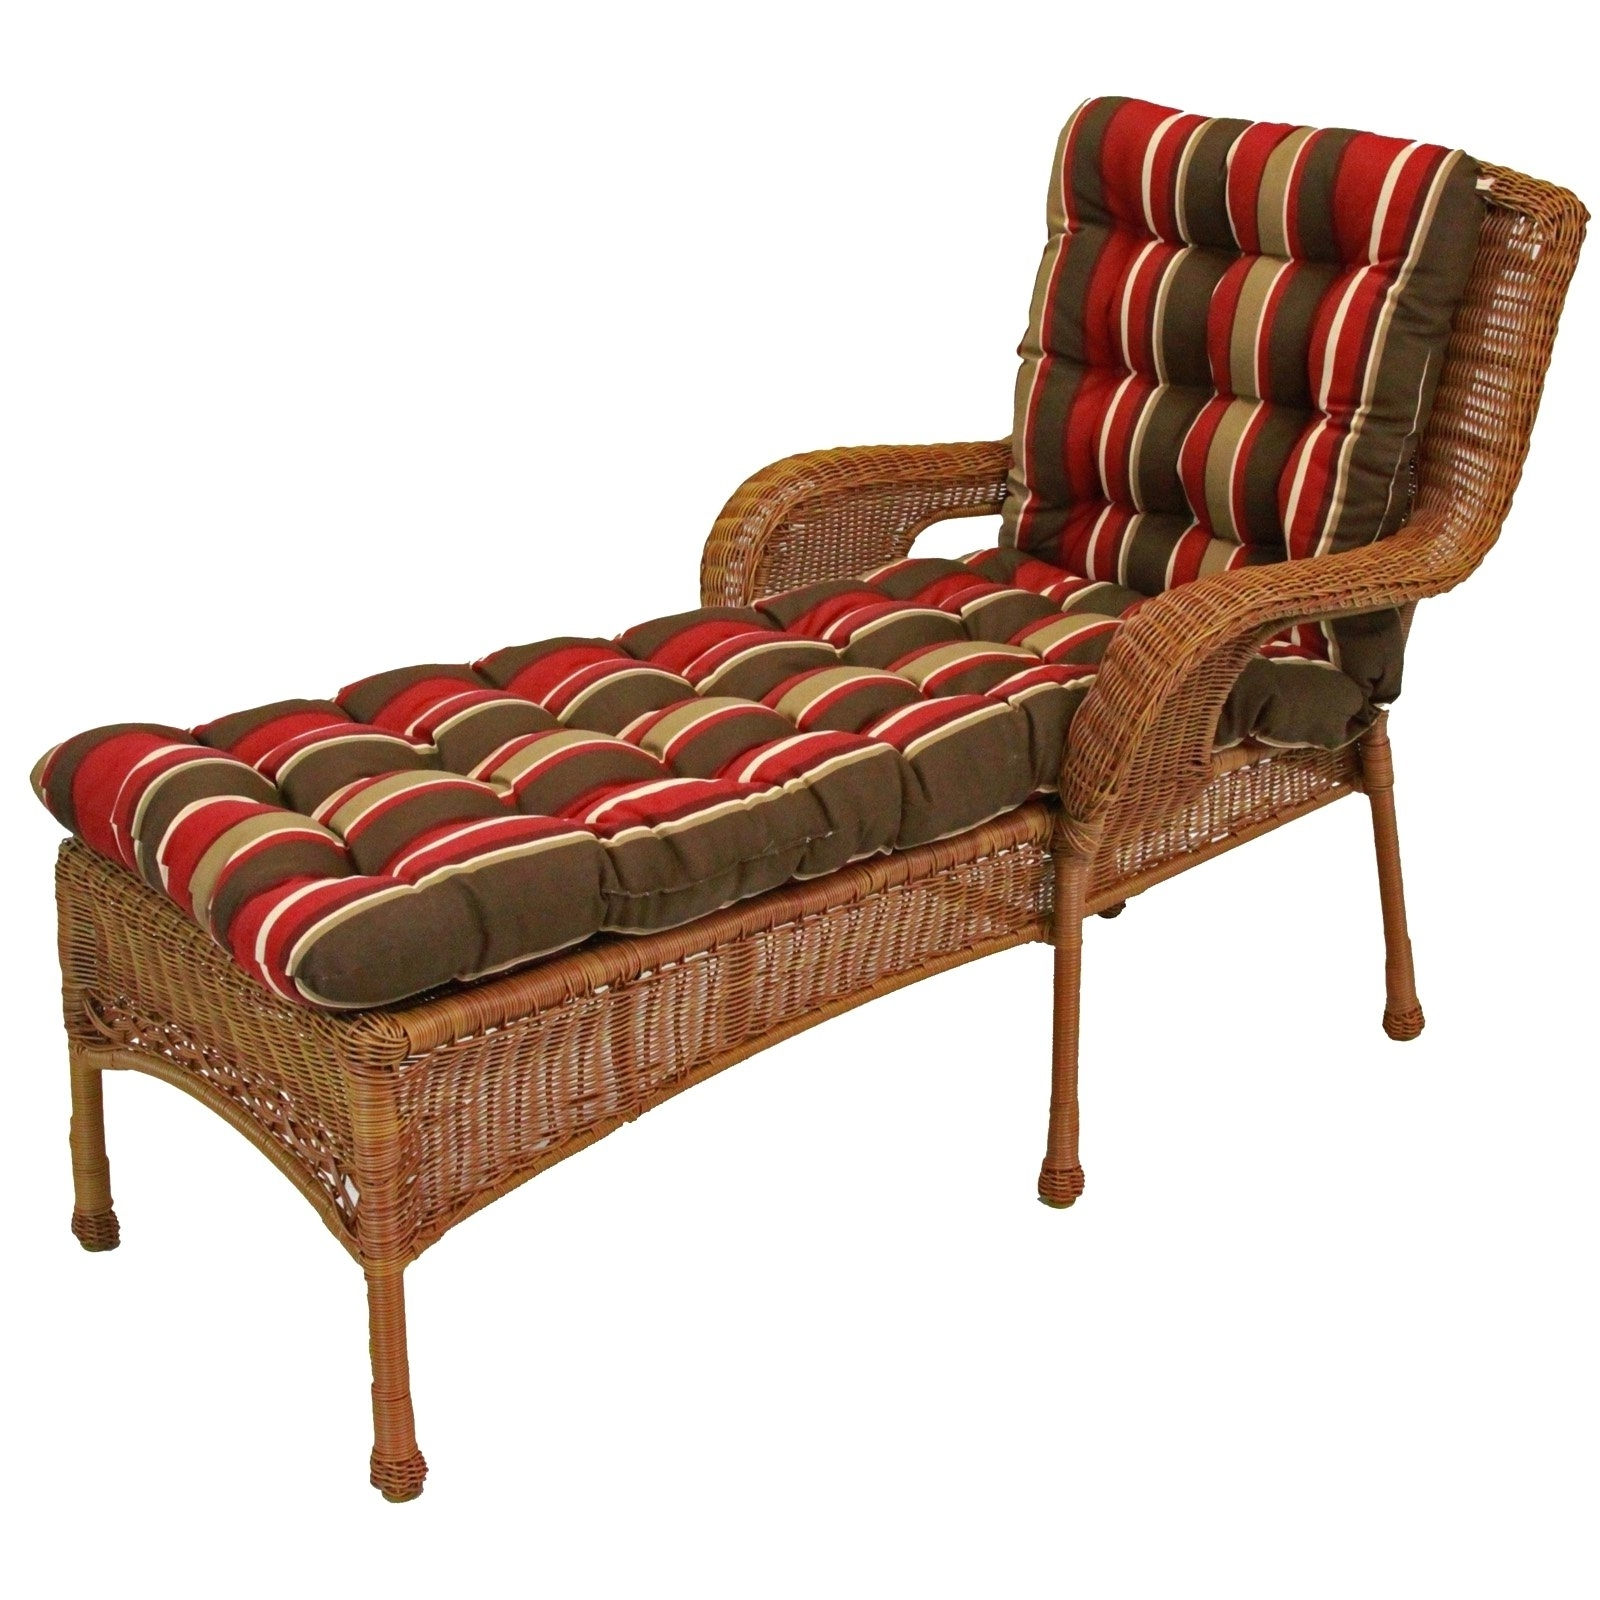 Trendy Keter Chaise Lounge Chairs Pertaining To Rattan Chaise Lounge Chair Indoor • Lounge Chairs Ideas (View 14 of 15)